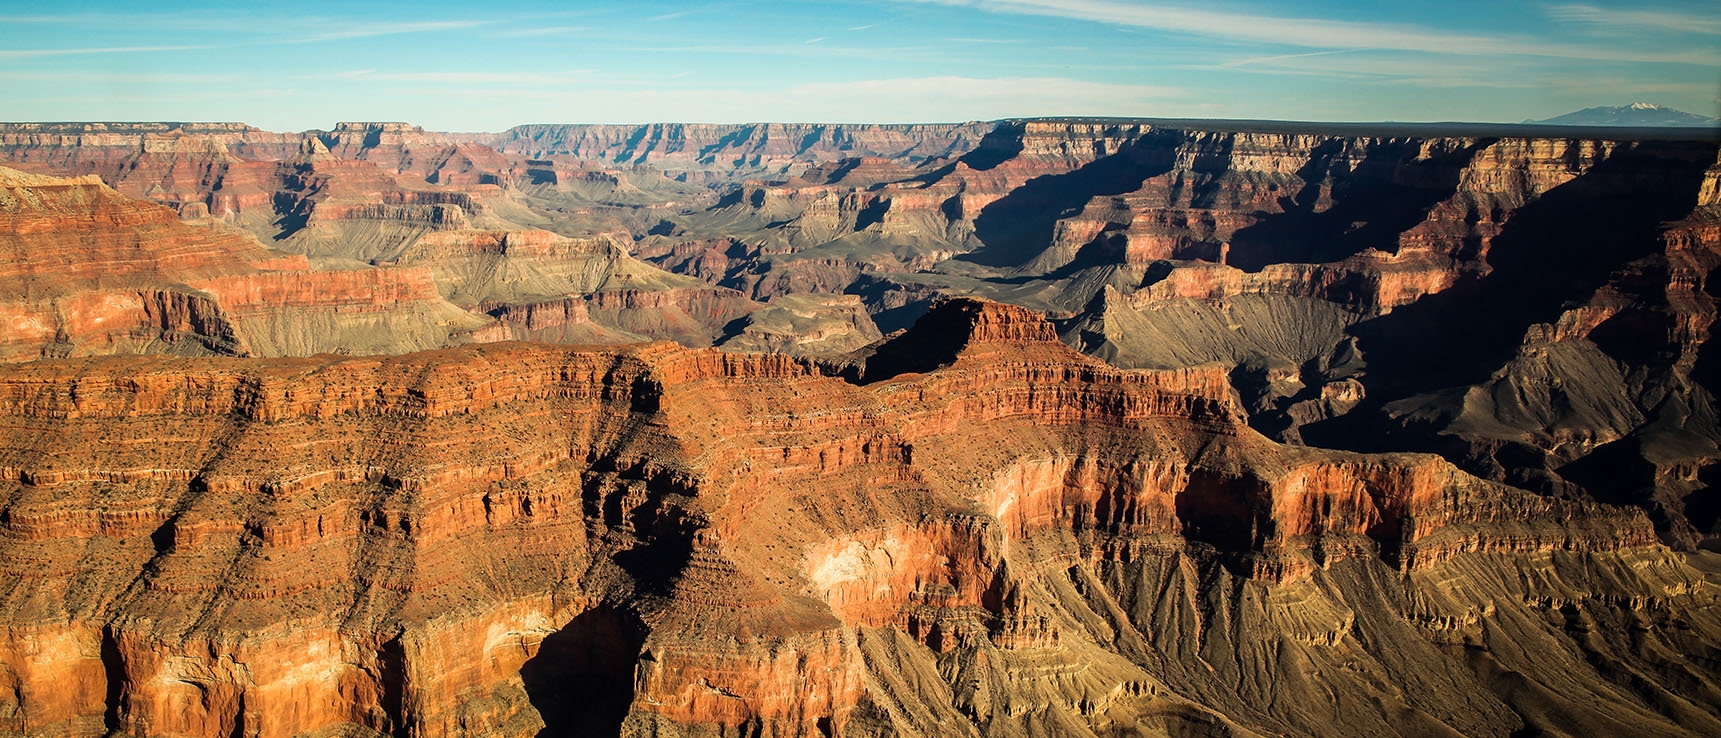 Grand Canyon National Park Arizona USA Road trip helicoptere